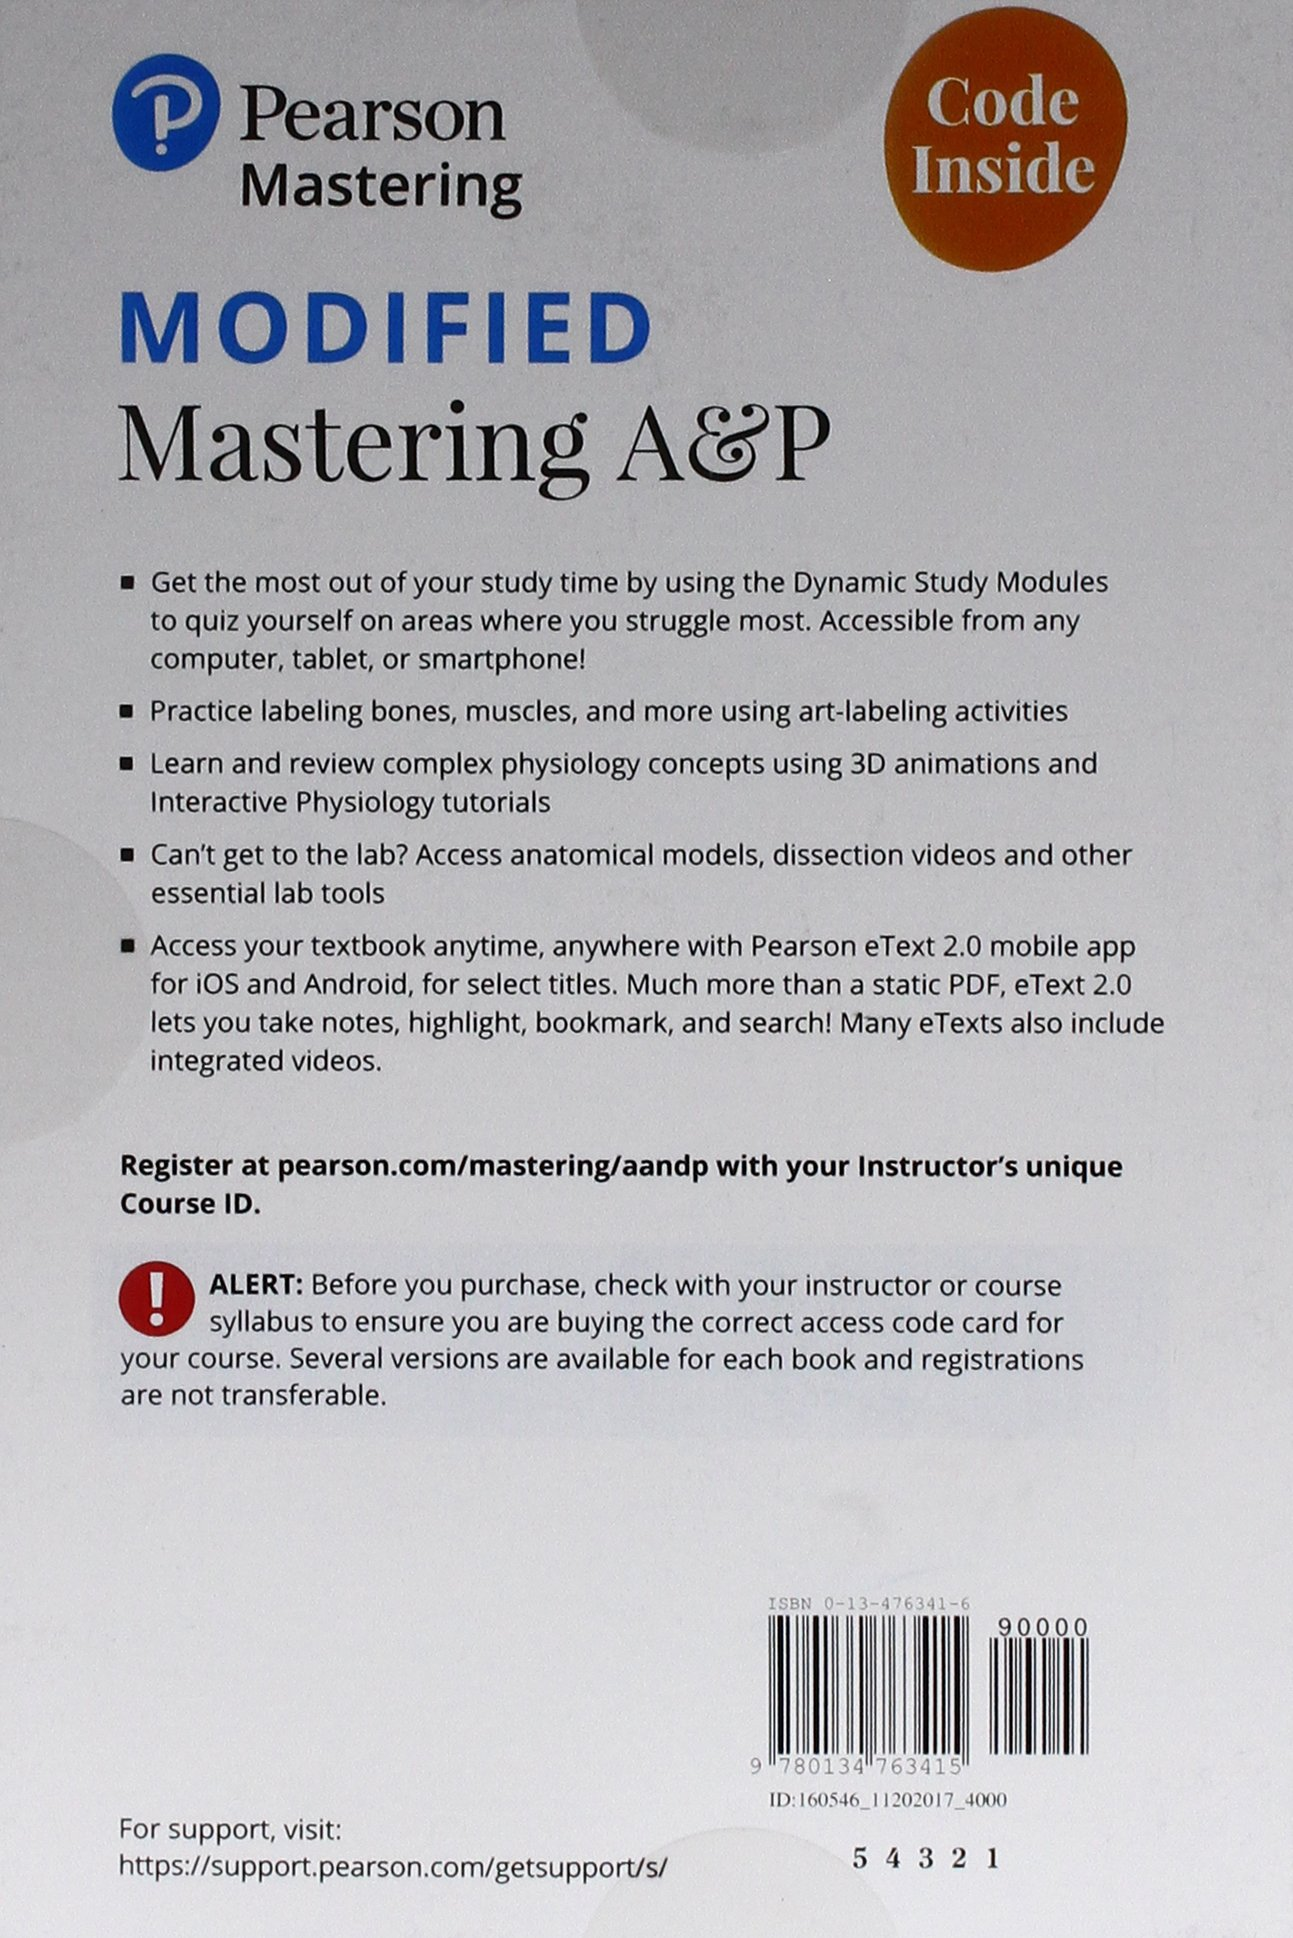 Buy Human Anatomy Physiology Modified Mastering Ap With Pearson